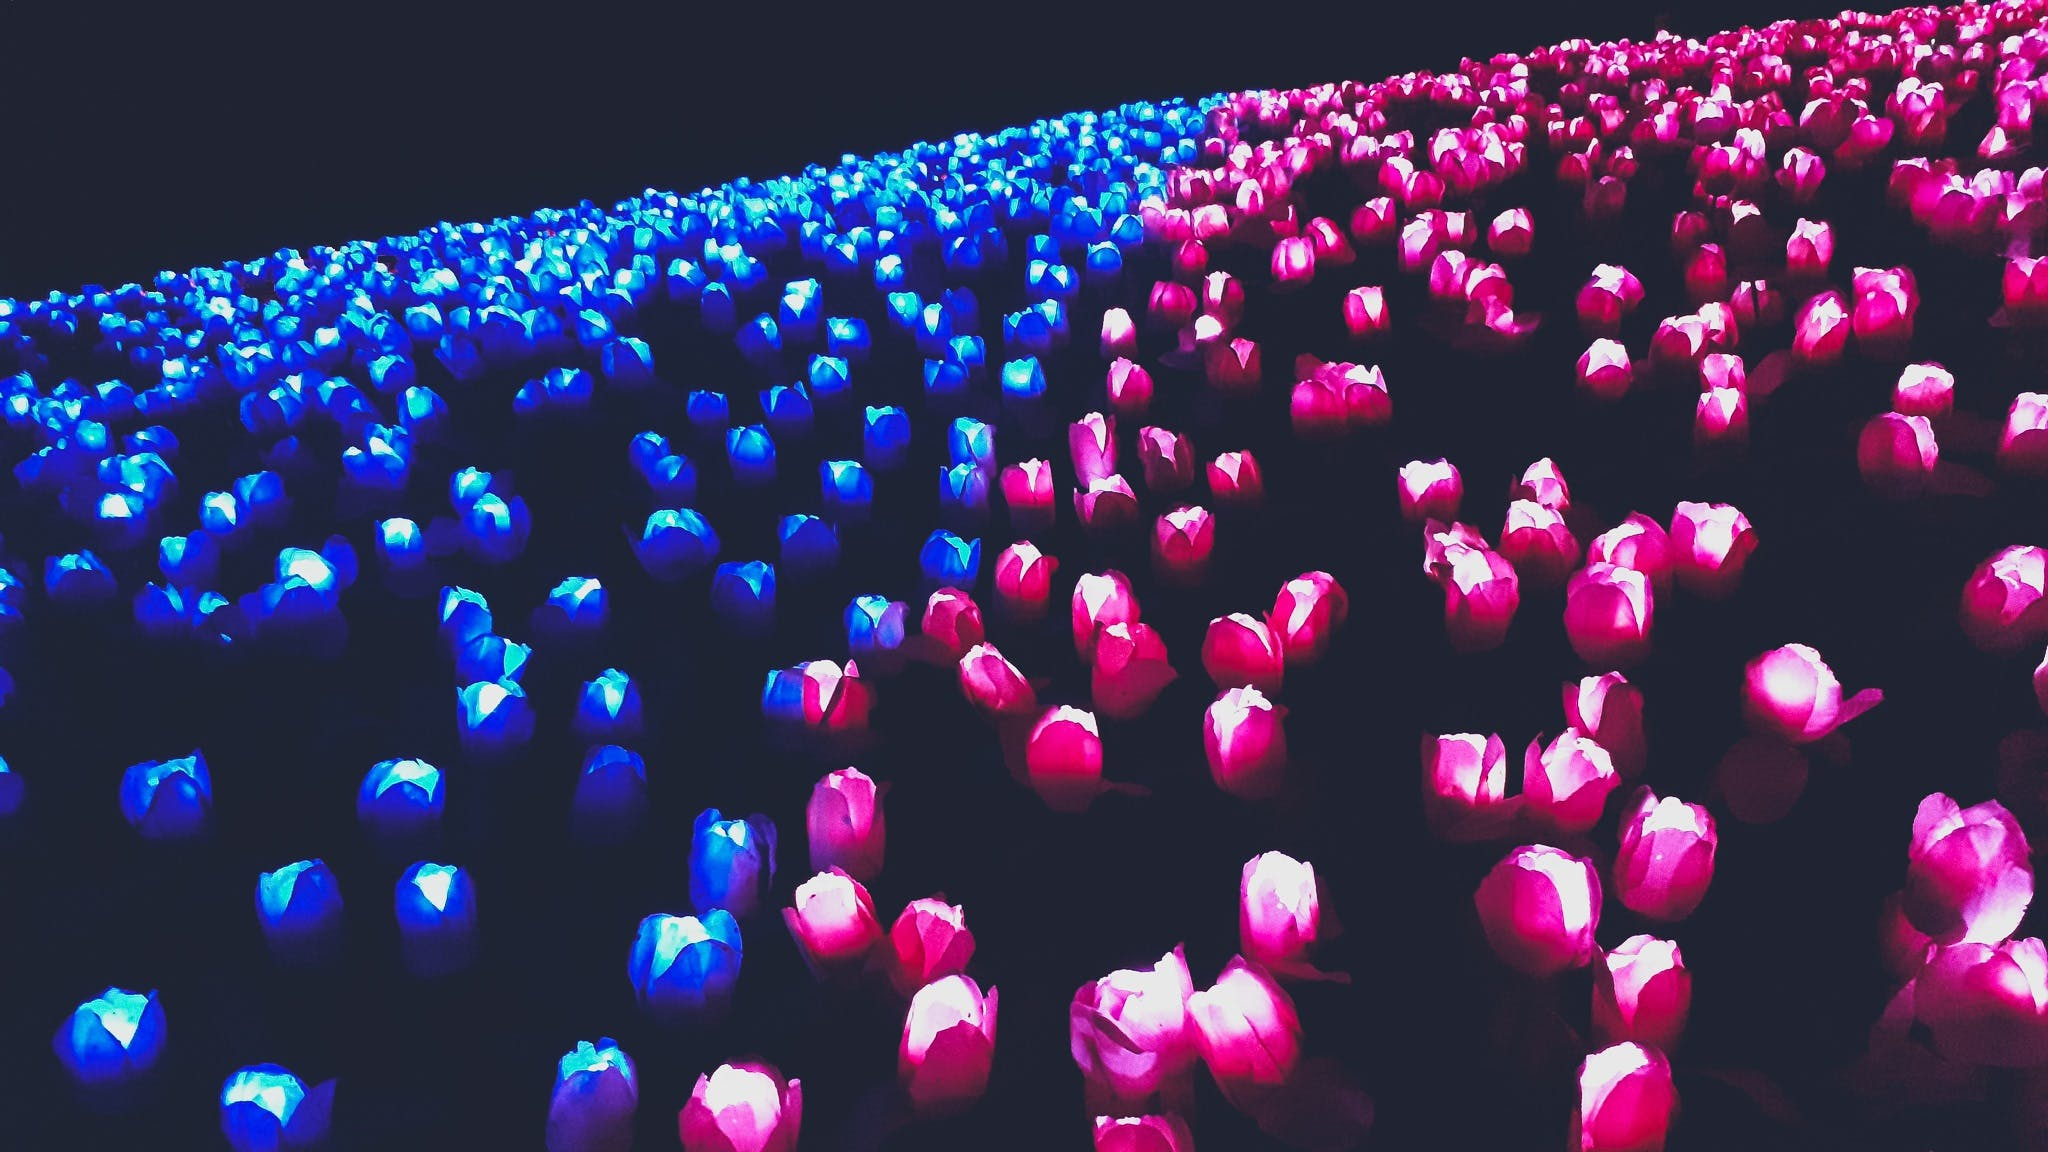 Free stock photo of field of flowers, led lights, night